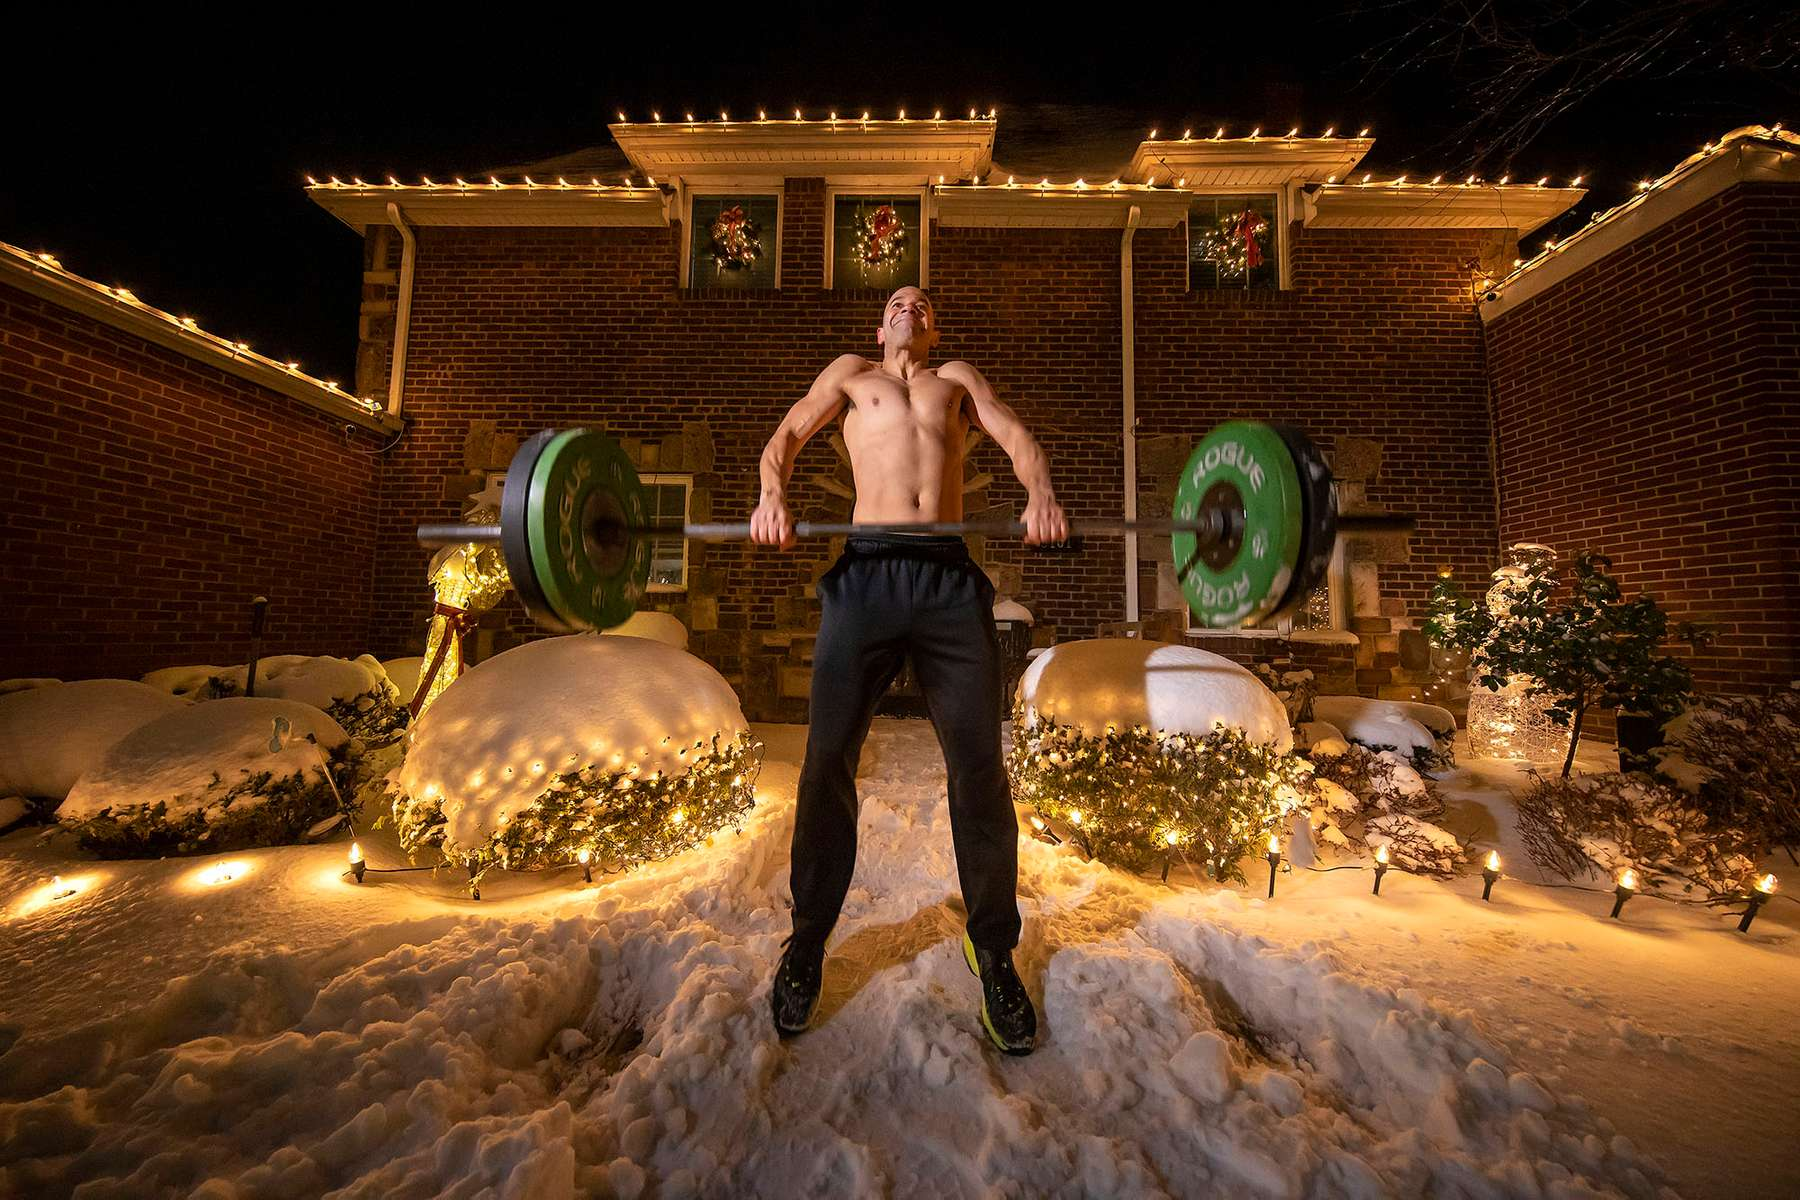 Loneil Jenkins exercises in front of his home after training with his virtual Fitness Trainer Dennis Guerrero on December 17th, 2020 in Oceanside, New York.  In March of 2014, Dennis Guerrero and his business partner opened a gym on Long Island. The pair shared a passion for fitness, a dream of creating a local community of like-minded people and a willingness to take a risk. Over the next six years, hundreds of members experienced and embraced a unique environment that fostered a palpable energy, helping athletes of all ages and abilities reach their potential.  The gym became a place to share achievements, work through losses and overcome illness. But like so many other businesses, it seemingly had no way of overcoming the financial impact and ongoing uncertainty of a global pandemic. With the arrival of Covid-19, the gym shut its doors back in March, with no idea when it would reopen. The owners, though, were far from done. They lent out every piece of equipment they owned to the gym's members, continued to pay their staff and worked to set up outdoor classes in hopes of keeping their membership active and healthy. As the shutdown stretched on, it became clear that the physical gym was closed for good.  They have since reinvented themselves and are now called Life Outside the Box.  Their business model has changed drastically, and all their workouts have gone virtual.  The workouts are conducted by a small group of fitness trainers led by Guerrero.  The members pay a monthly fee and can take live Zoom fitness classes.  They are coached by the virtual trainers in real time.  More and more people have reconstructed their garages, spare rooms, backyards, and basements into home gyms since the COVID-19 pandemic hit the United States.